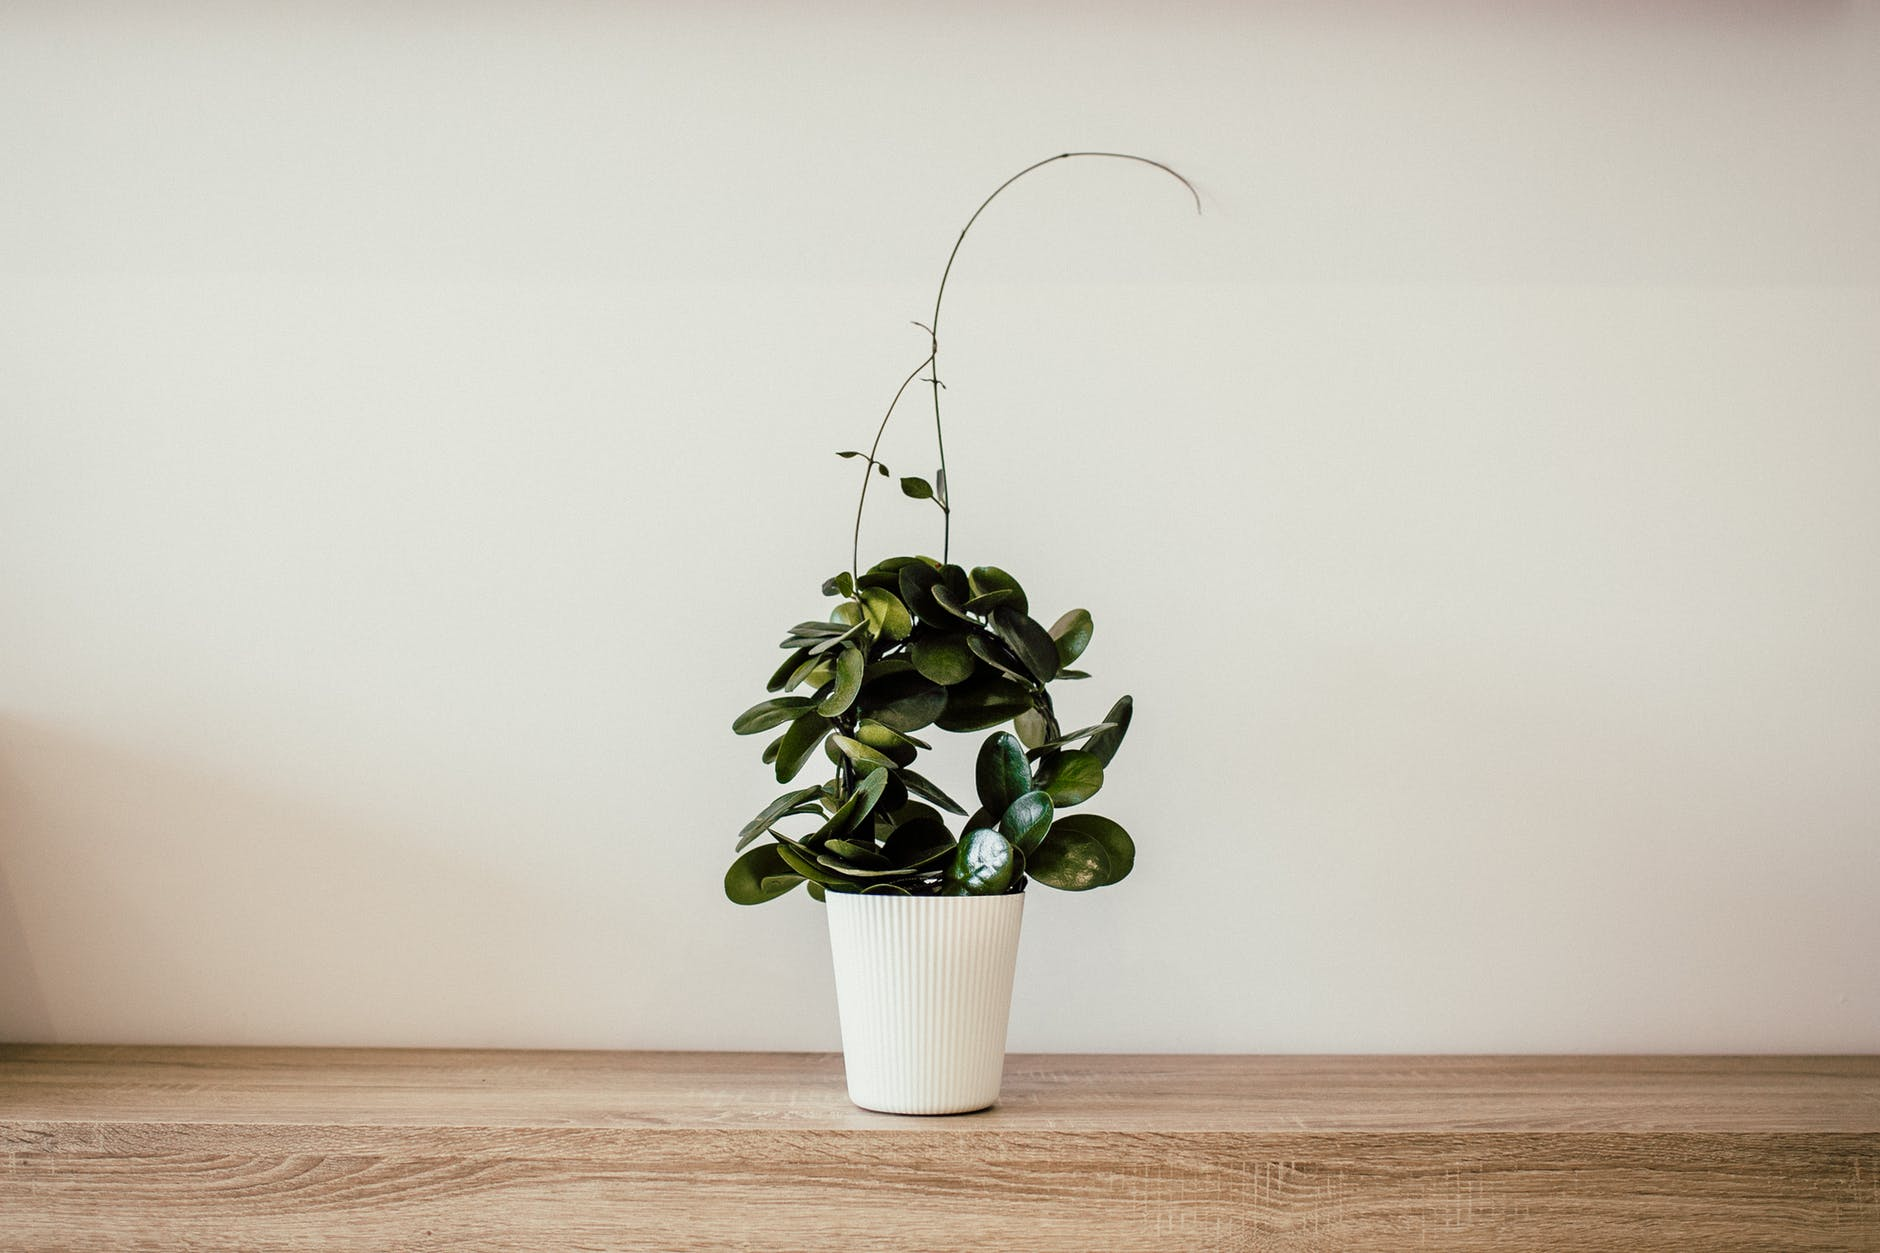 Live Plants Can Reduce Dust by up to 20%